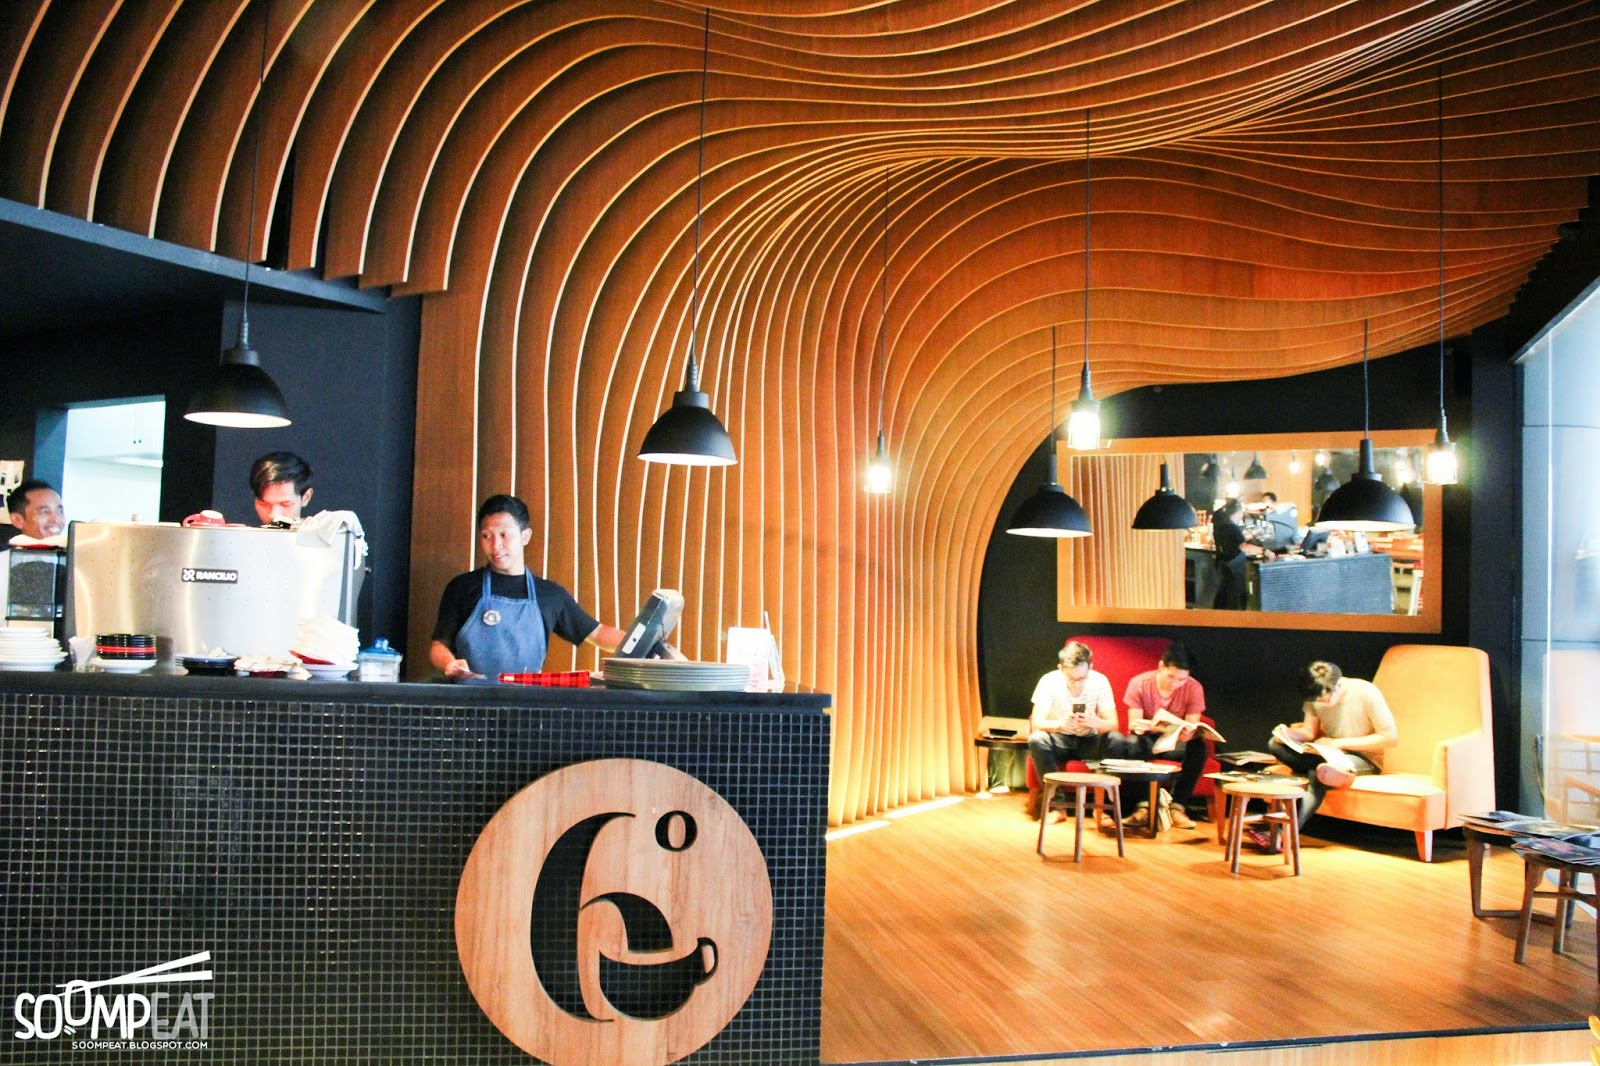 6 degrees coffee drinkers mall alam sutera tangerang soompeat 6 degrees coffee drinkers mall alam sutera tangerang altavistaventures Image collections